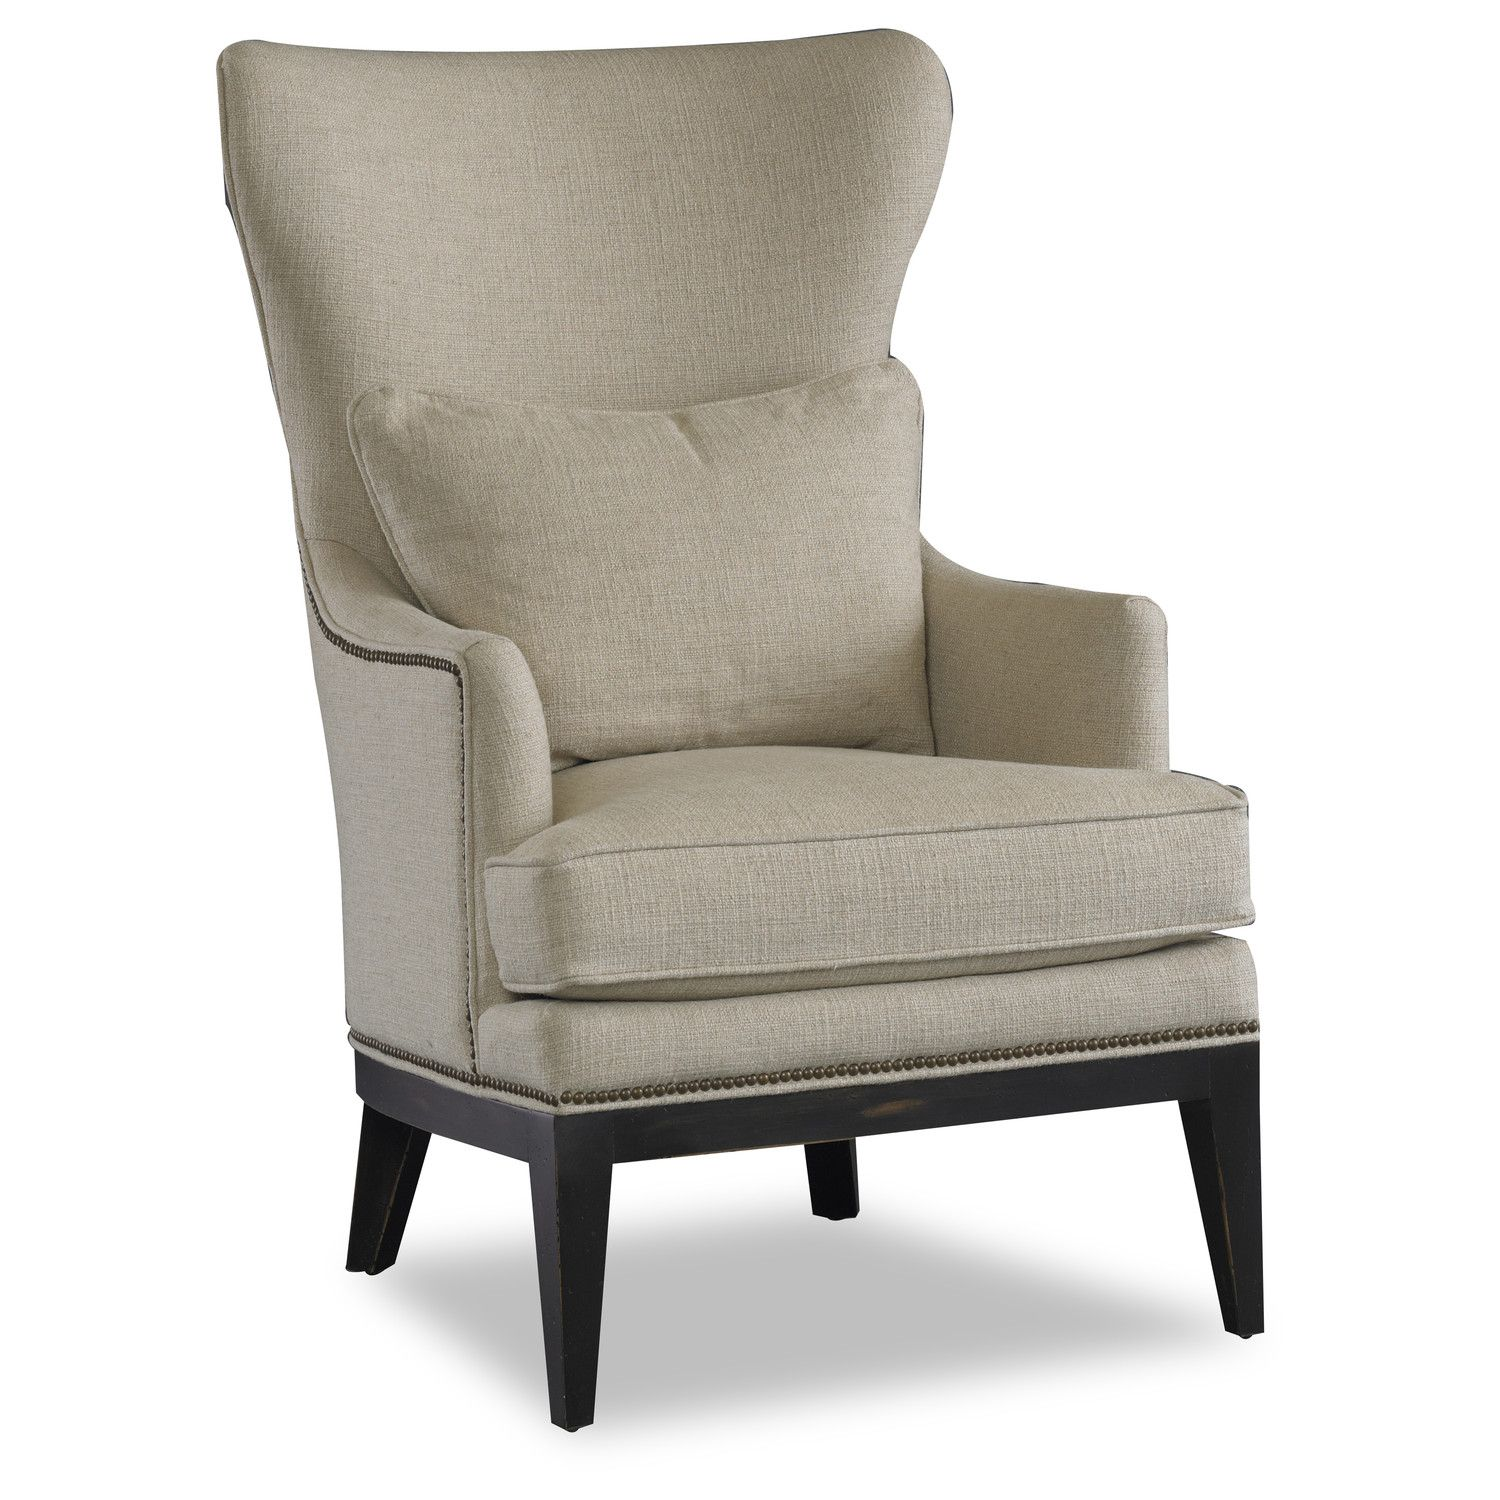 Sam Moore Bryn Chair & Reviews | Wayfair